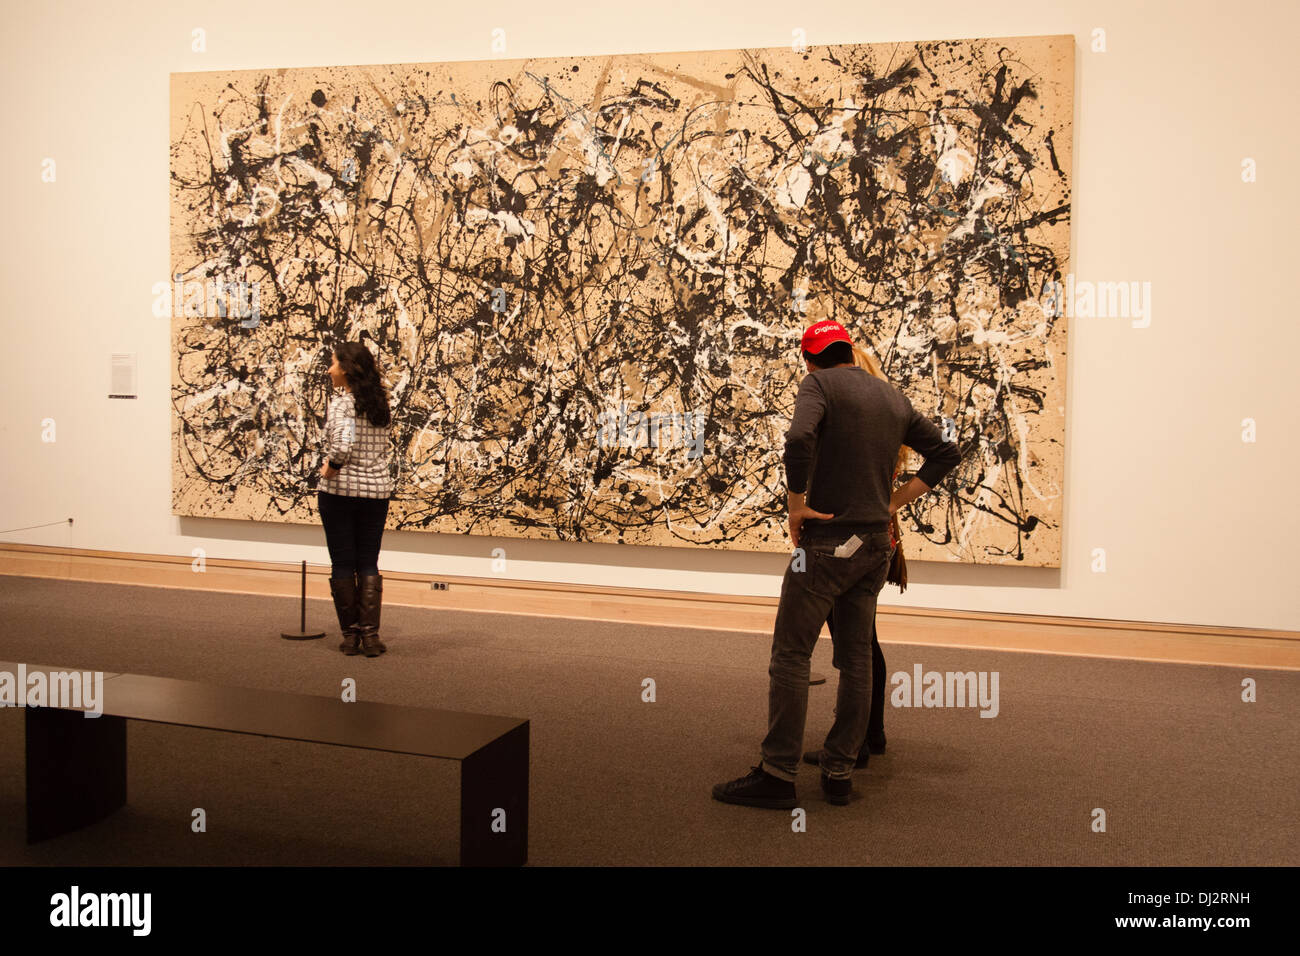 autumn rhythm number 30 by jackson pollock Autumn rhythm (number 30), by jackson pollock, american, 1912-1956, oil on canvas, 105 x 207, 1950 this is the official description of a large painting (approx 9' x 17') hanging in the metropolitan museum of art.